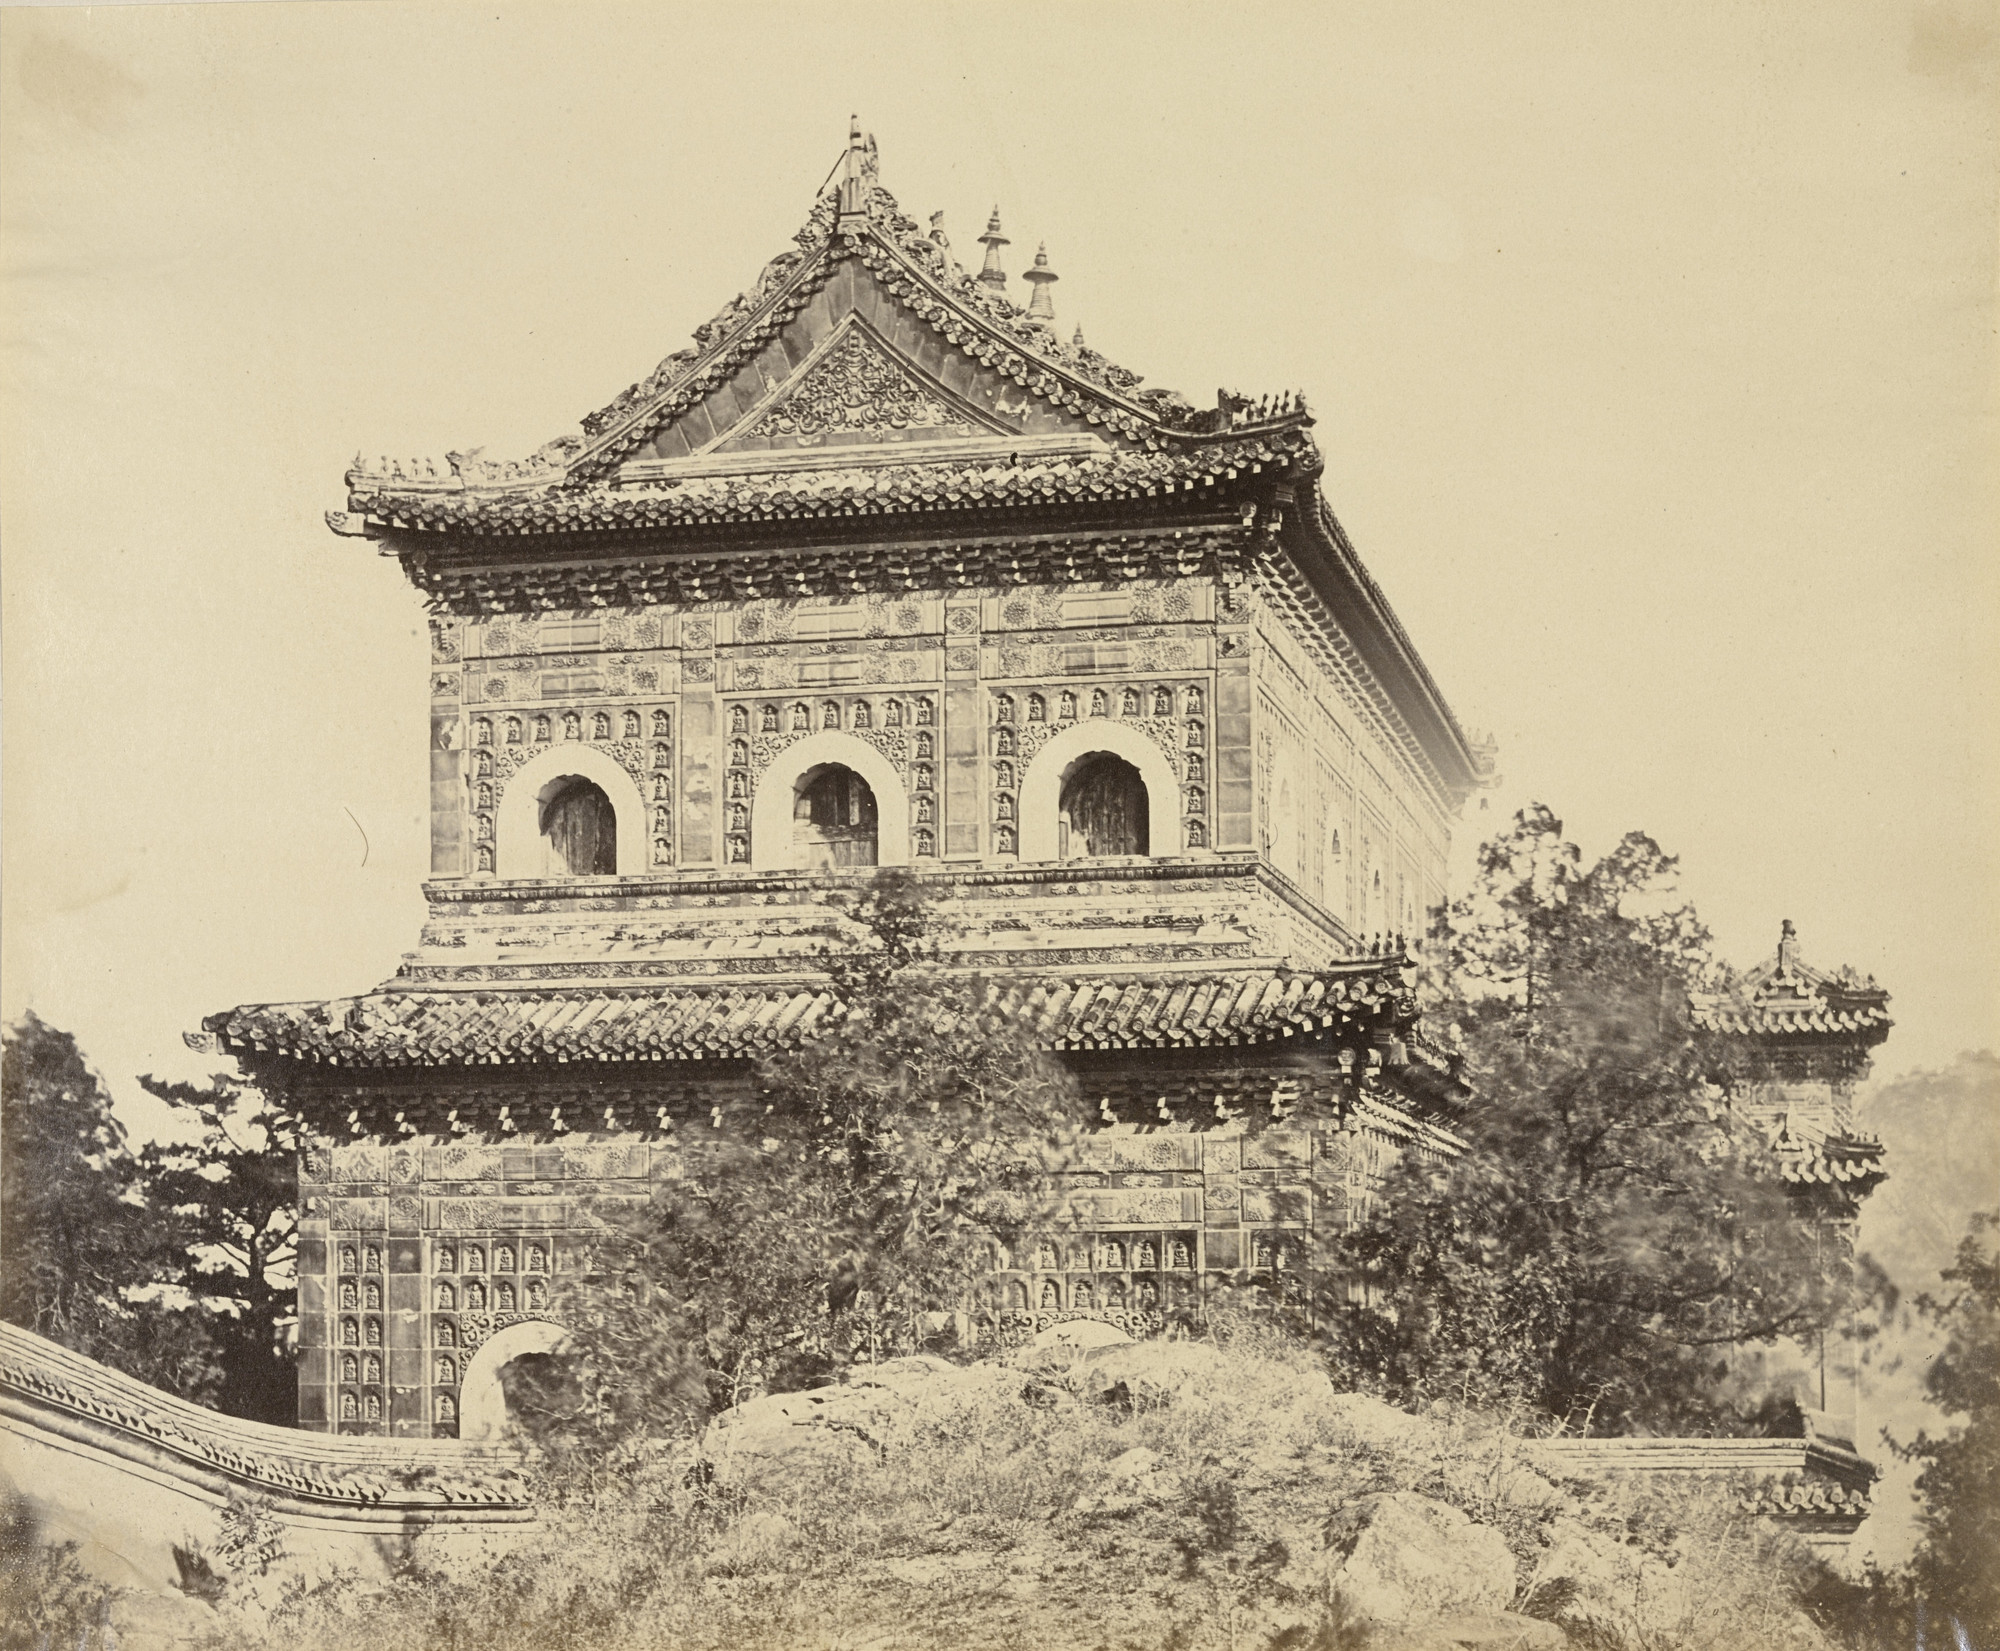 Felice Beato. The Great Imperial Porcelain Palace, Yuen Ming Yuen, Pekin. October 1860